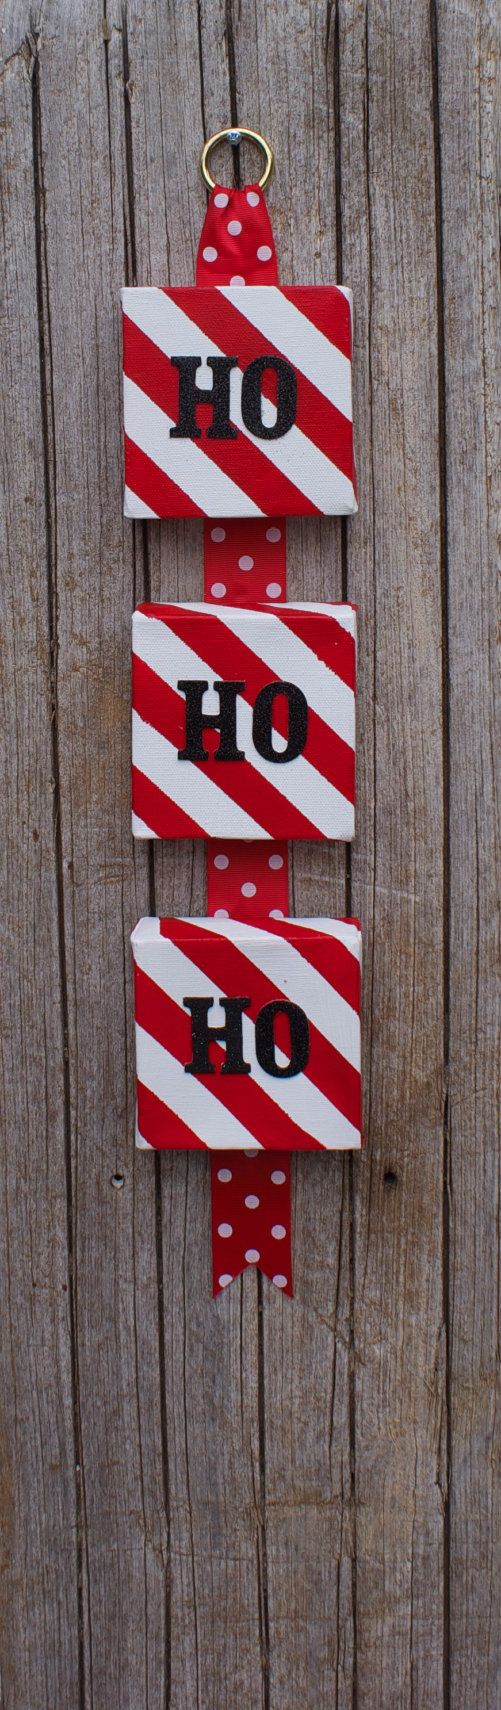 HoHoHo Stripes Canvas Hanging by 3GirlsandaKiln on Etsy, $30.00